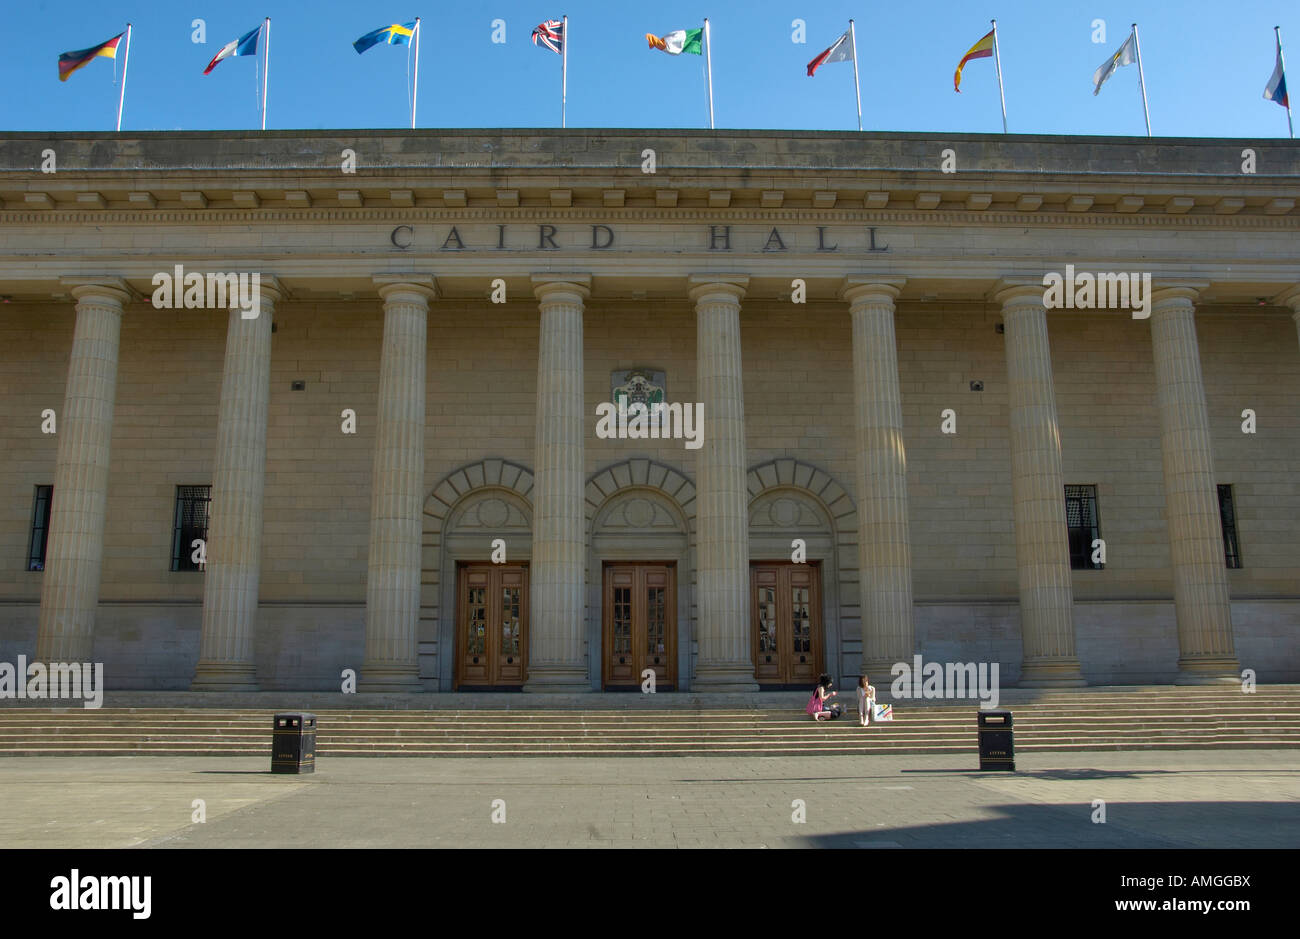 Caird Hall Dundee - Stock Image